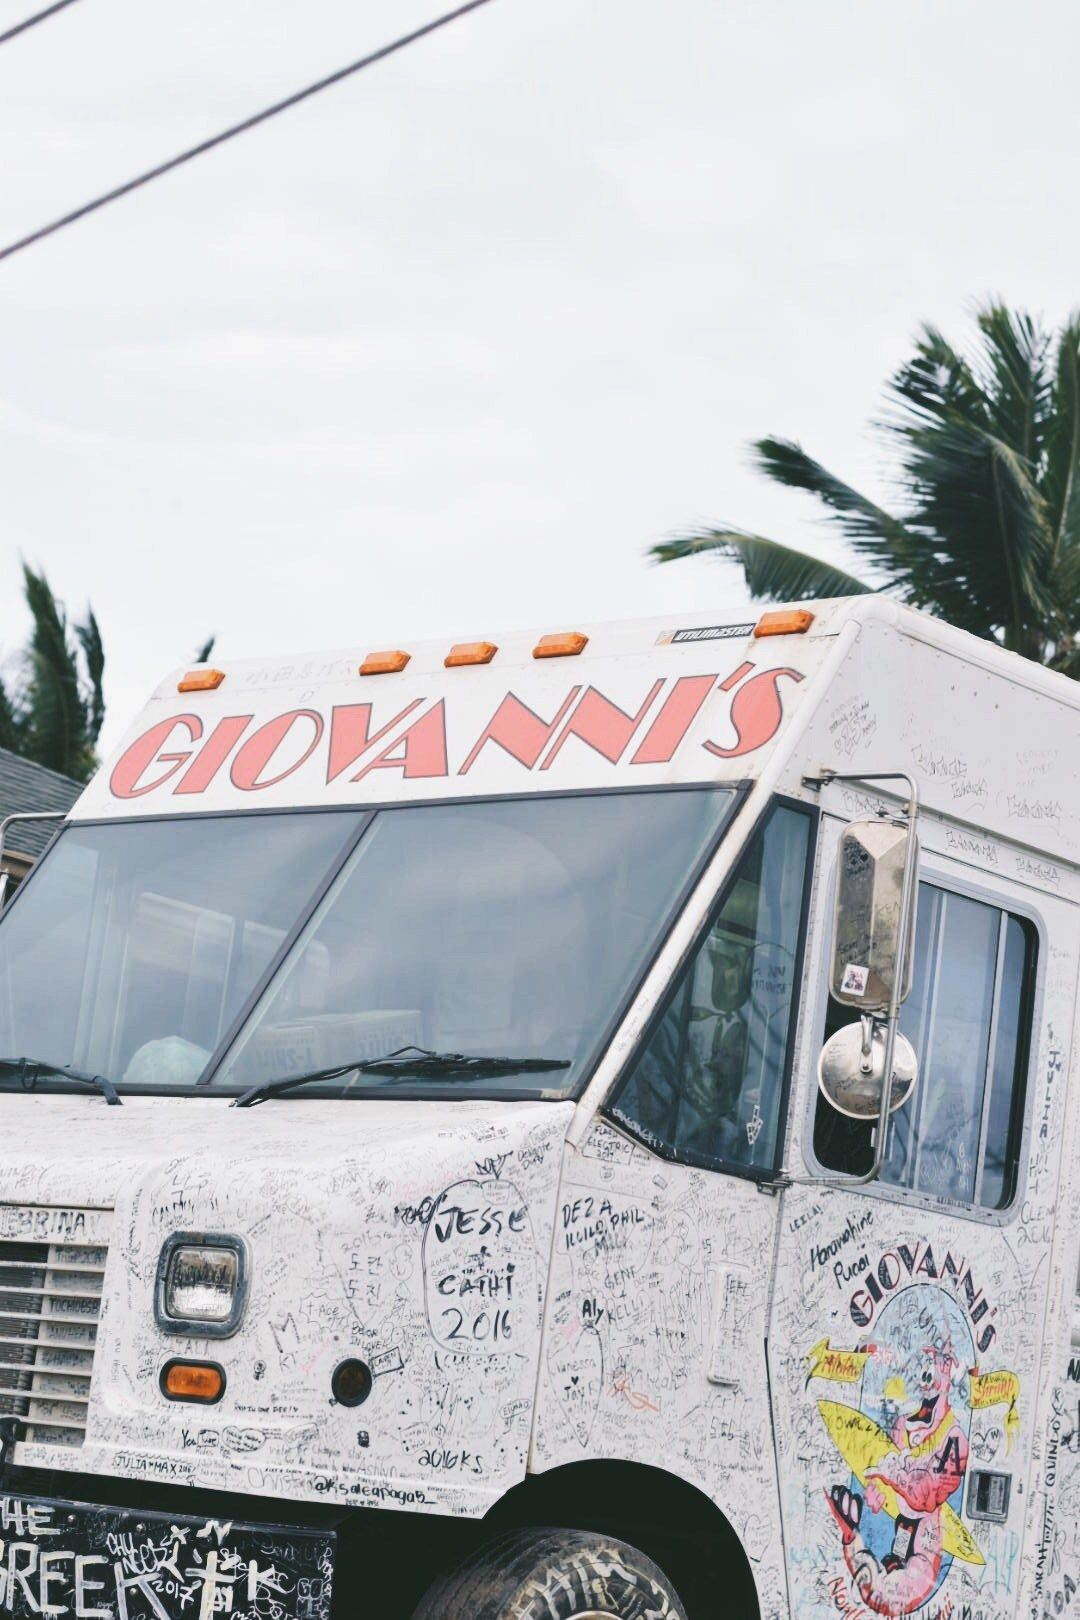 giovanni's shrimp truck, oahu northshore, what to eat in